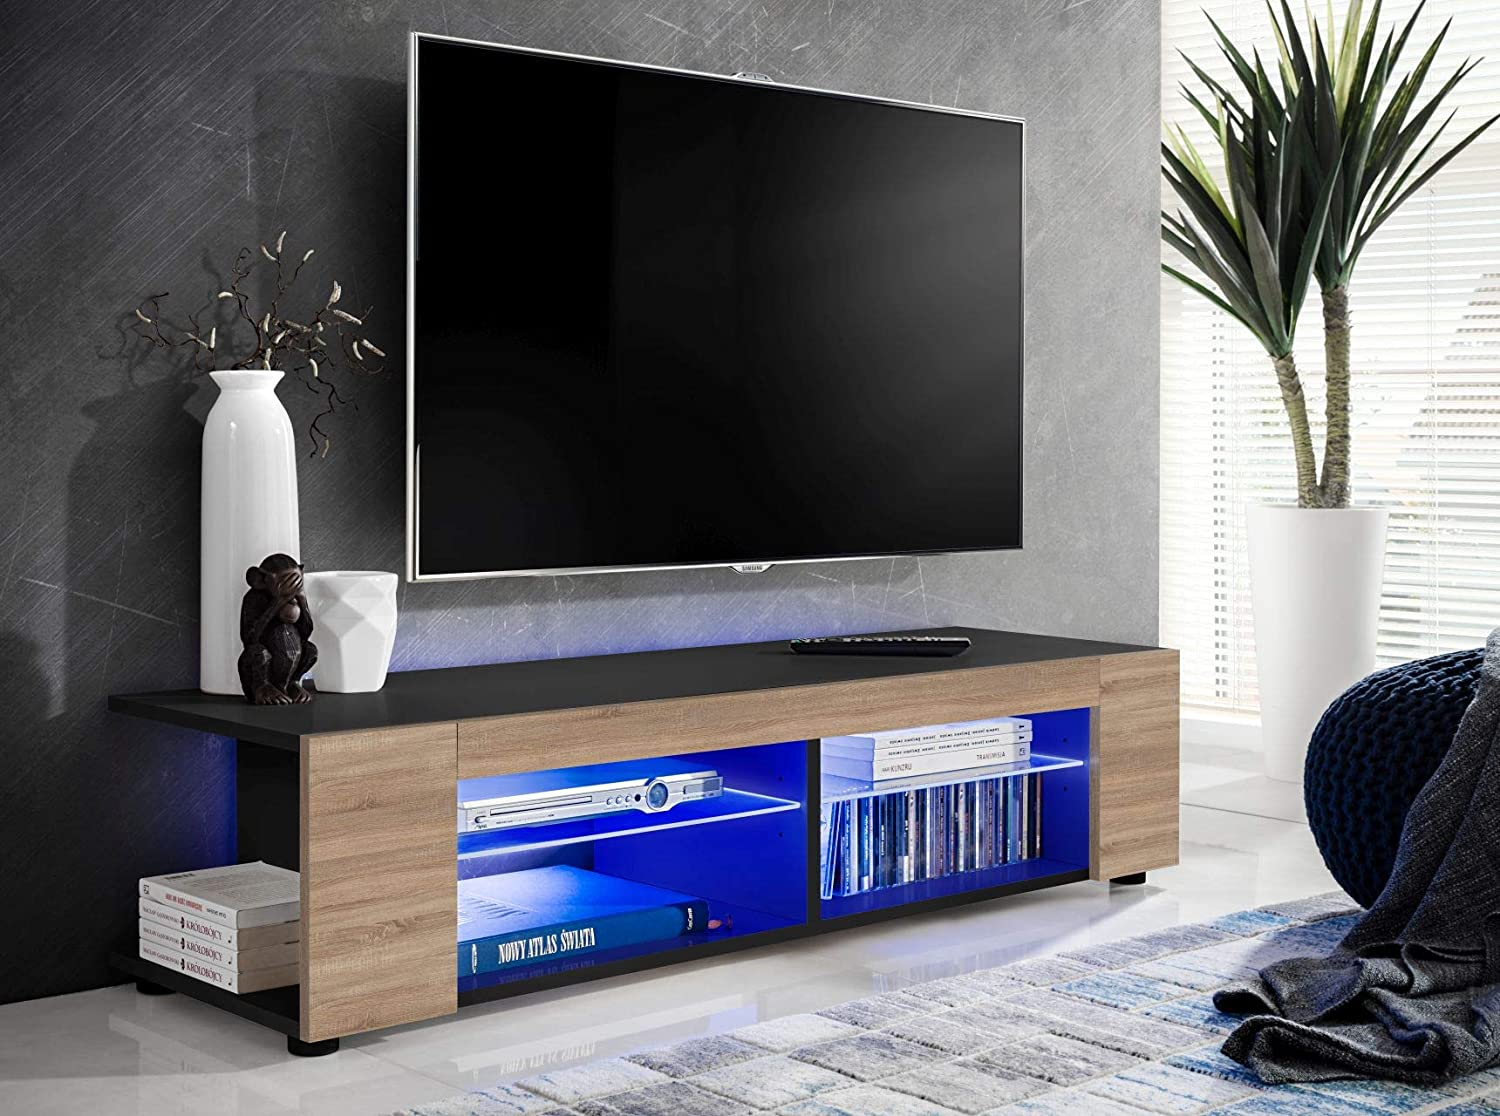 ExtremeFurniture T37 Meuble TV Carcasse en Noir Mat//Fa/çade en Blanc Brillant LED Bleues